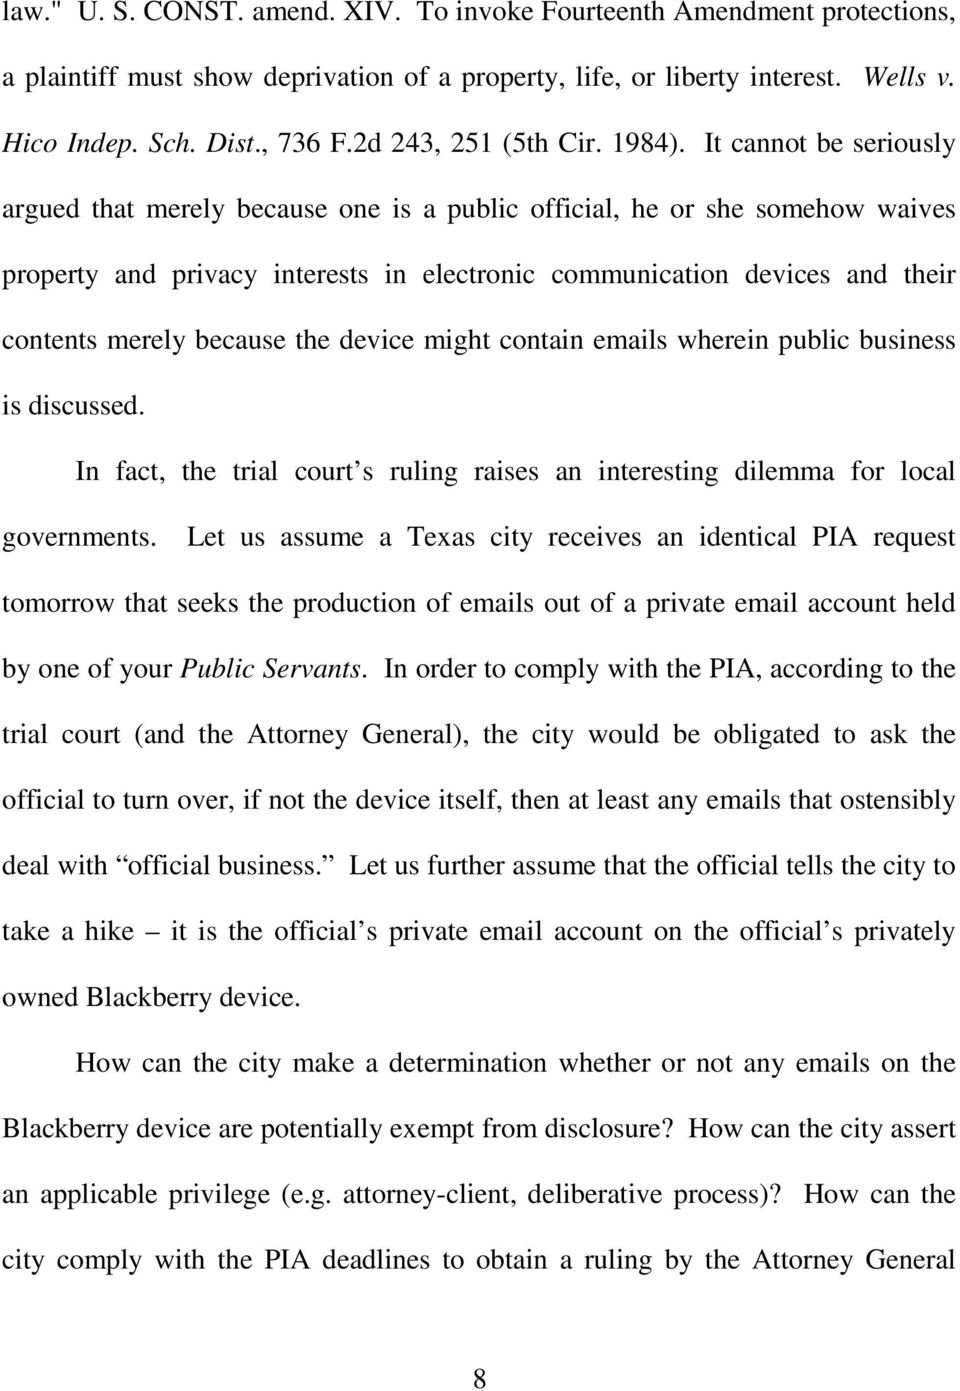 It cannot be seriously argued that merely because one is a public official, he or she somehow waives property and privacy interests in electronic communication devices and their contents merely